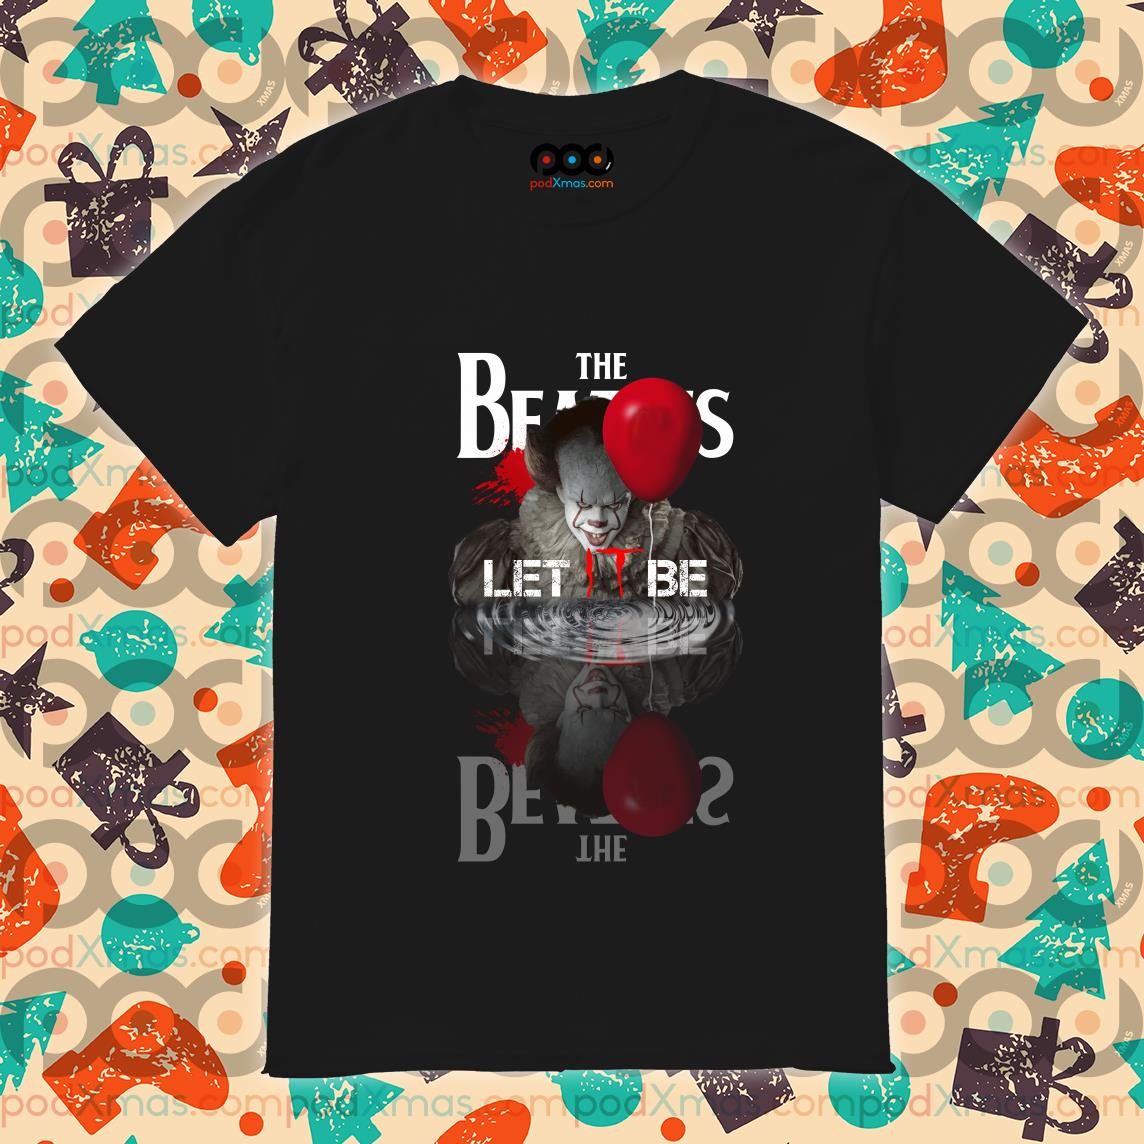 The Beatles Let IT be Pennywise shirt